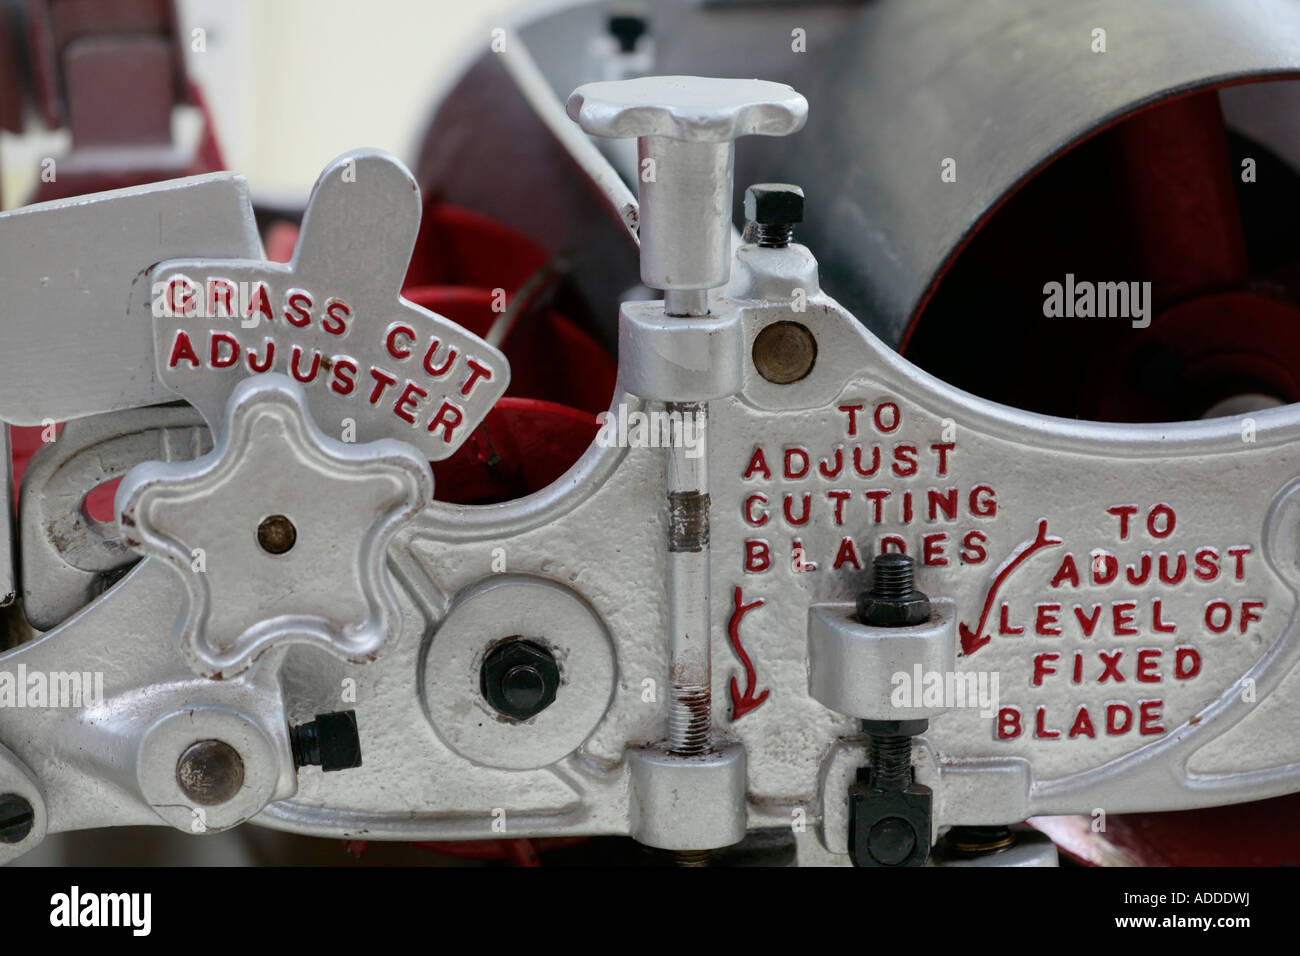 Close up of parts of an old fashioned push lawnmower - Stock Image